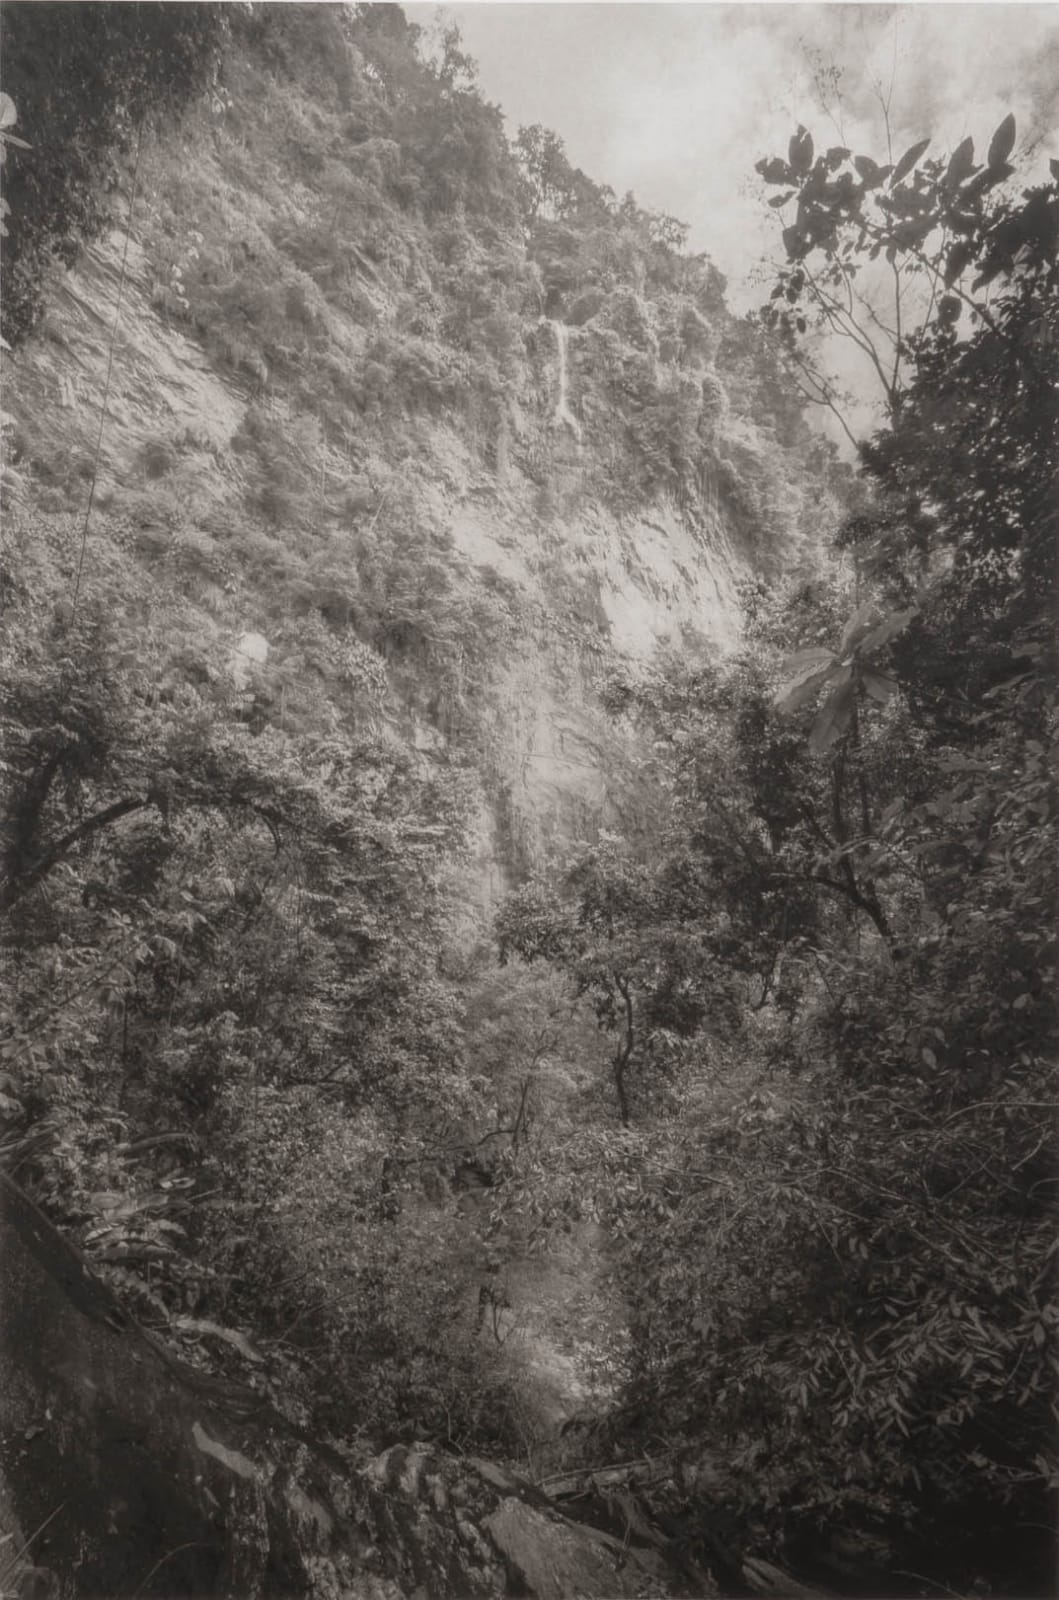 David Hartt The Histories (after Cazabon) 2020 Photogravure from a 27 x 18 1/4 inch plate 31 x 22 1/4 inches Edition of 10 and 1AP